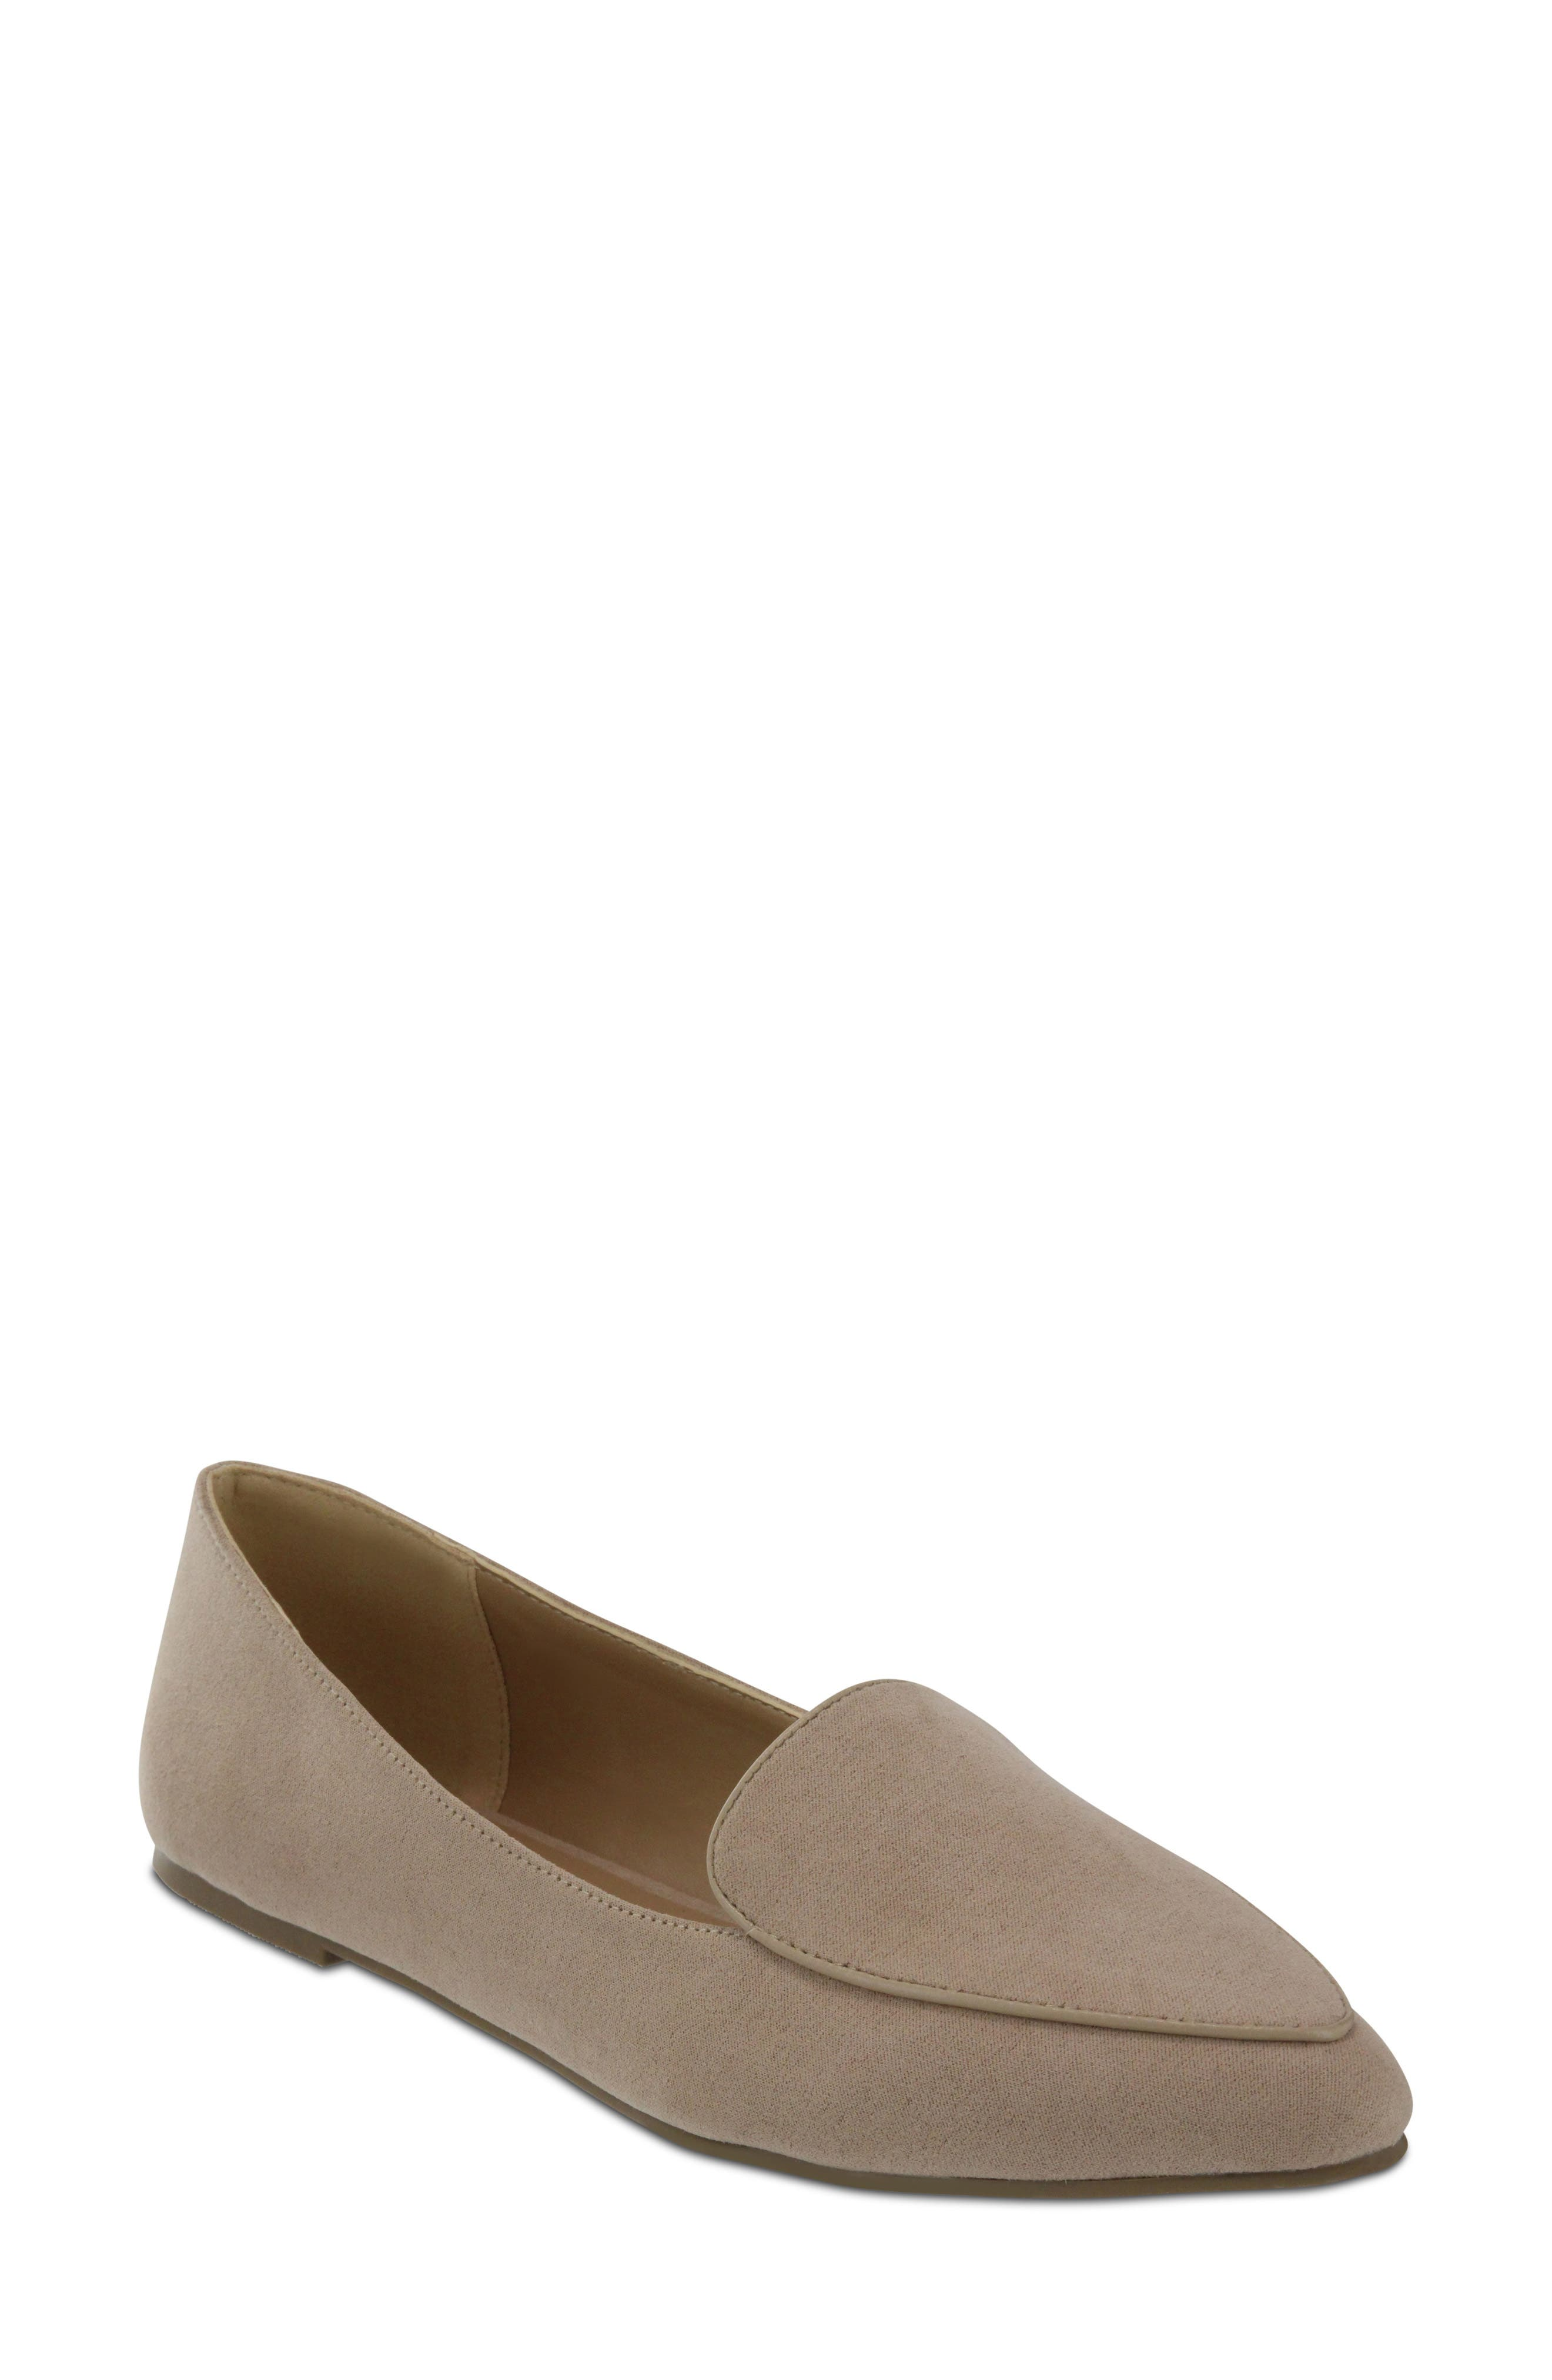 Niles Loafer,                         Main,                         color, Natural